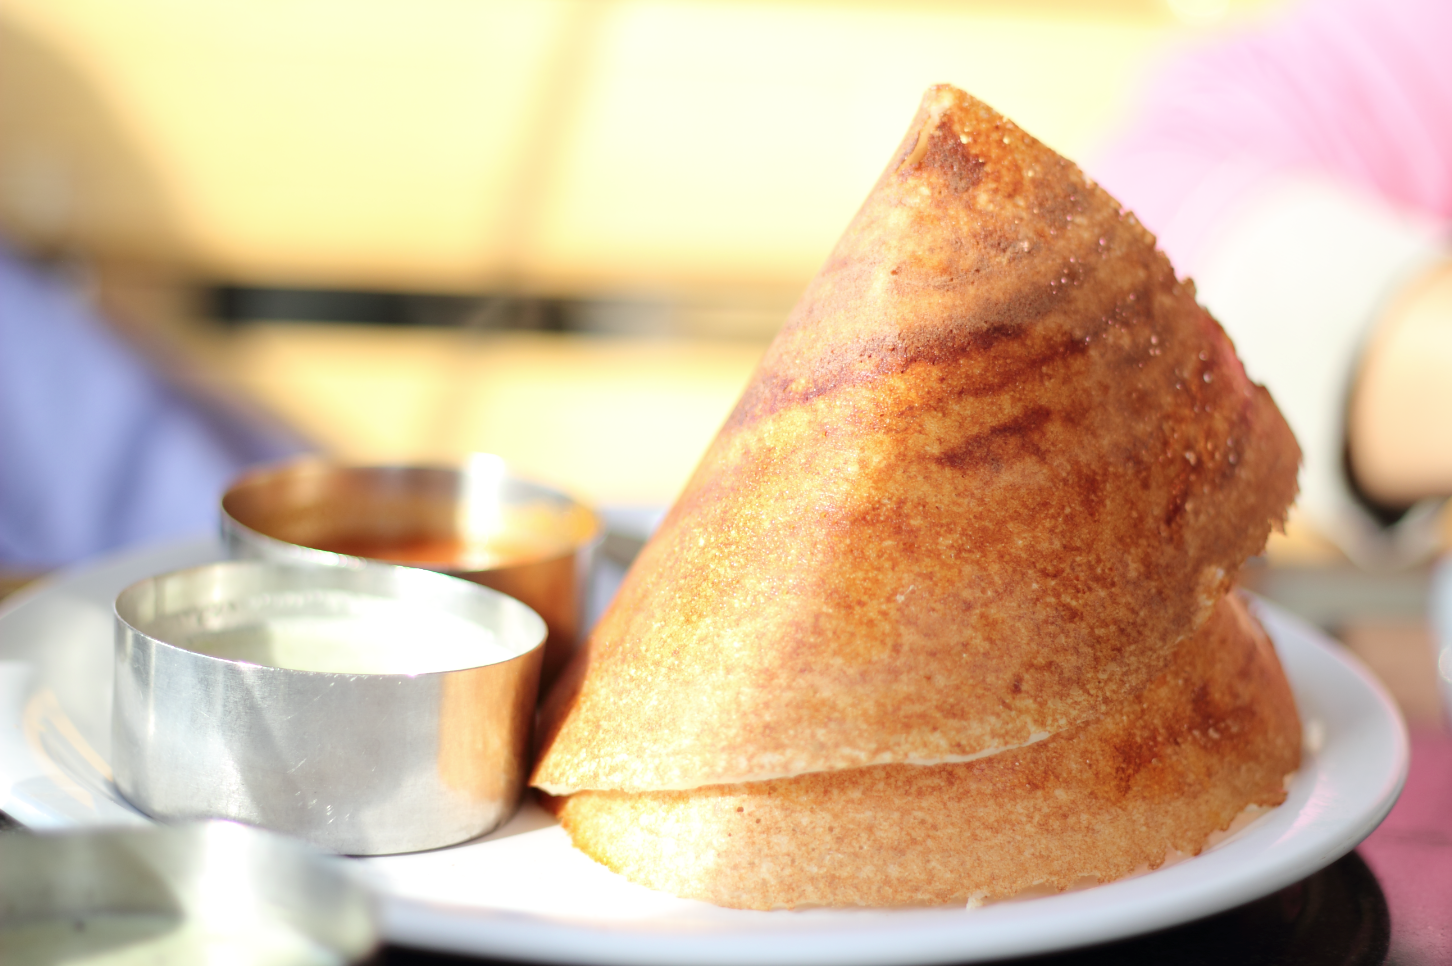 hat dosa triangle